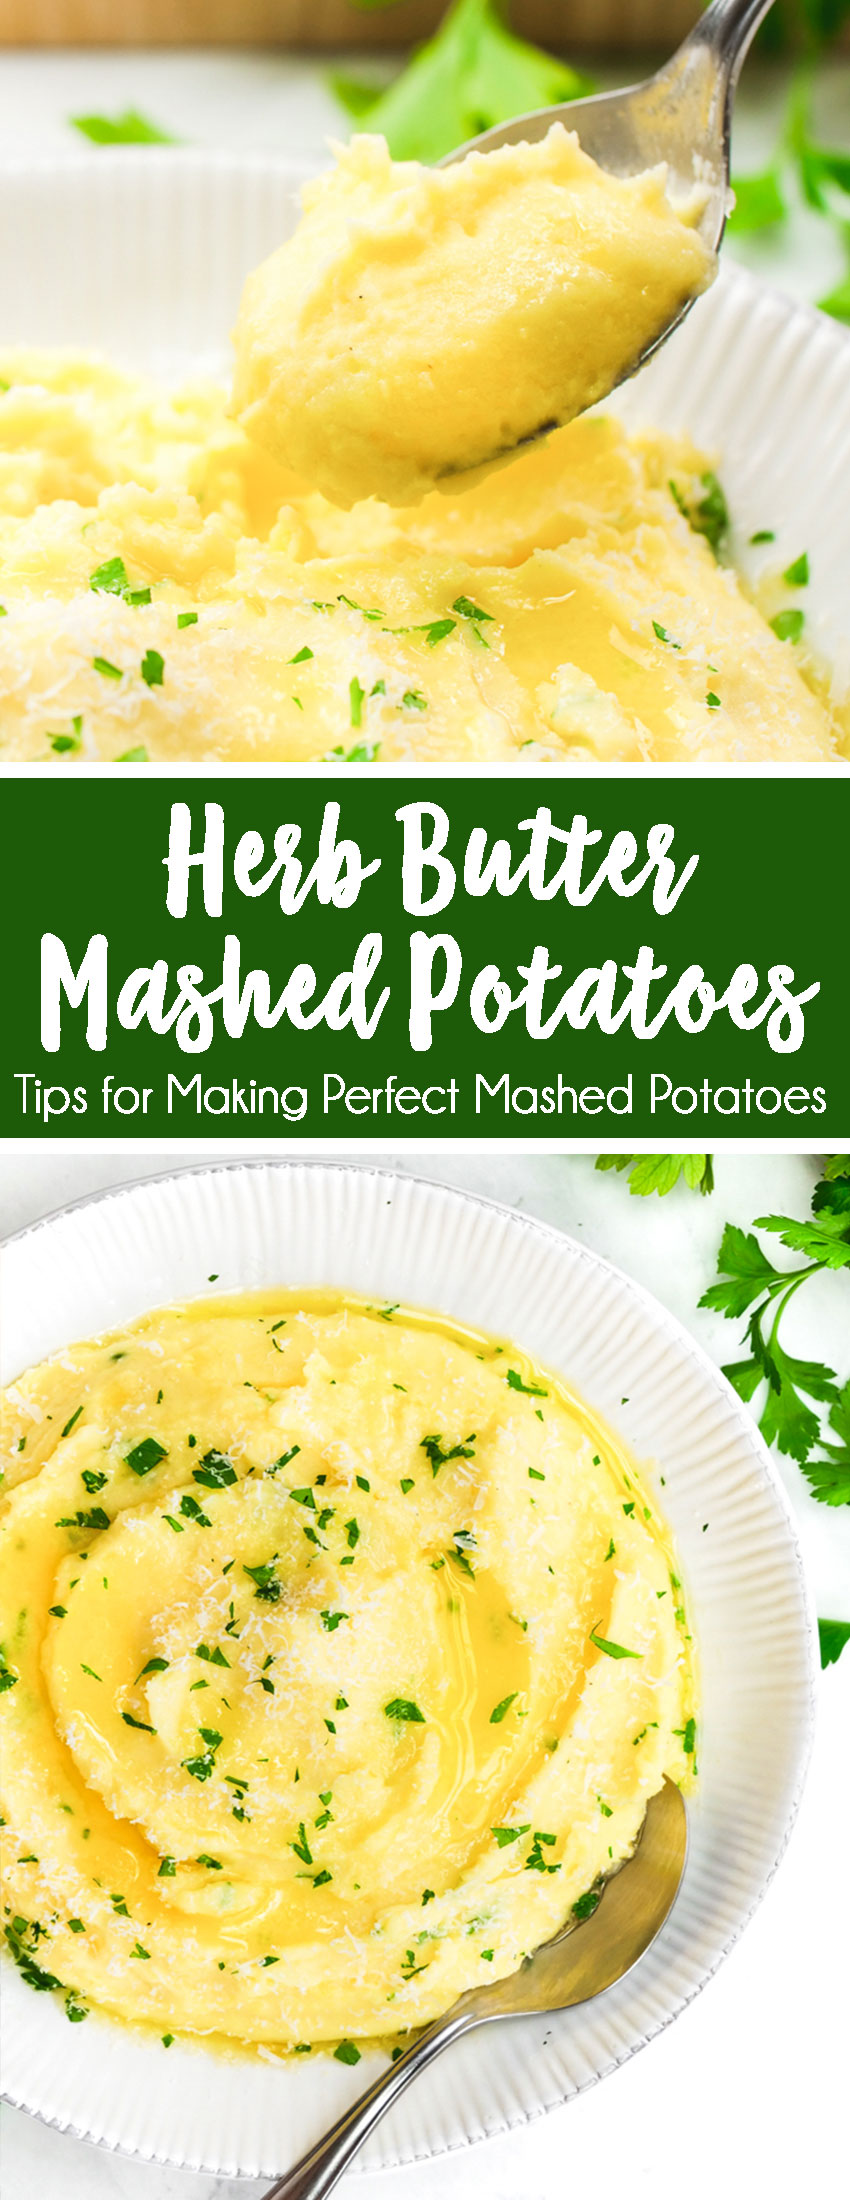 How to make mashed potatoes, these herb butter mashed potatoes are light, fluffy, and sooo flavorful